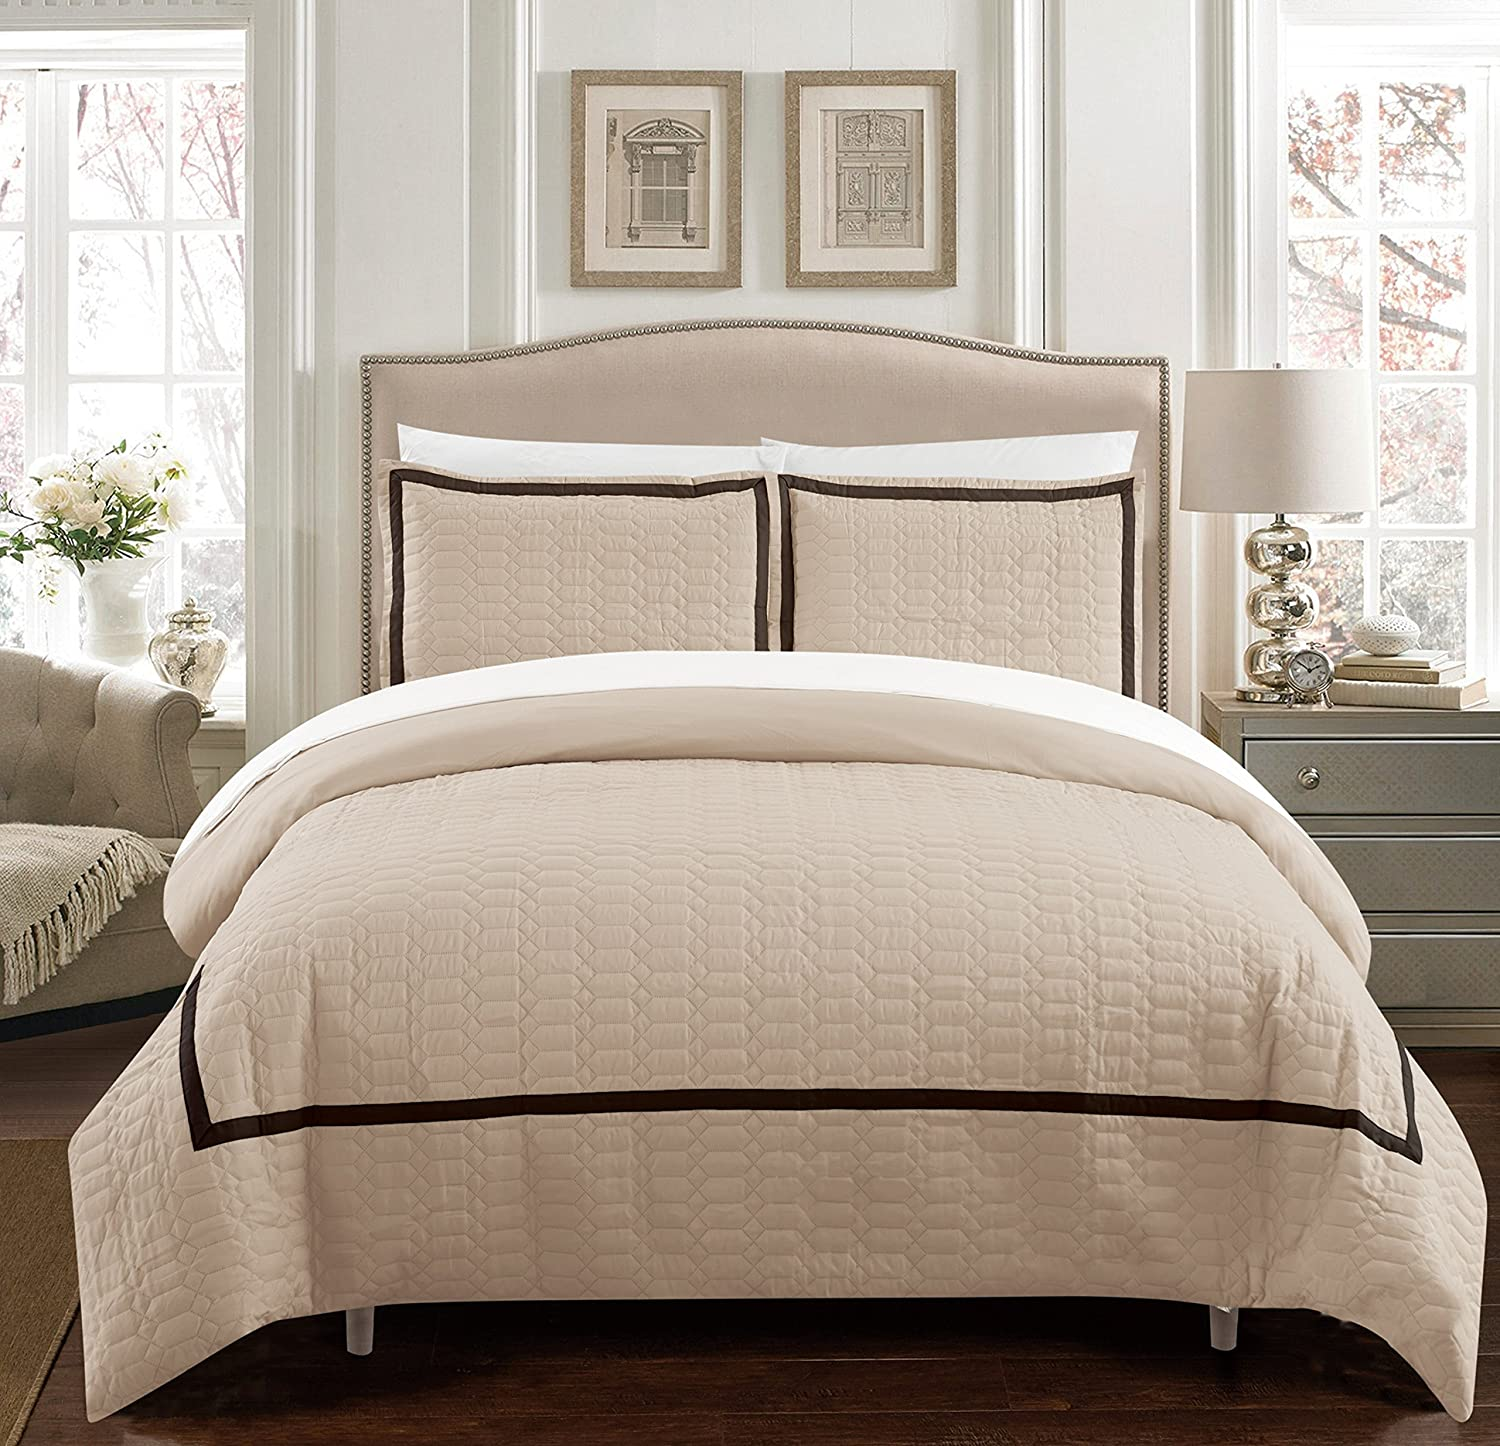 Chic Home Cleofe 5 Piece Duvet Cover Set Hotel Collection Two Tone Banded Print Zipper Closure Bed in a Bag Bedding - Sheets Decorative Pillow Sham Included, Twin XL Beige